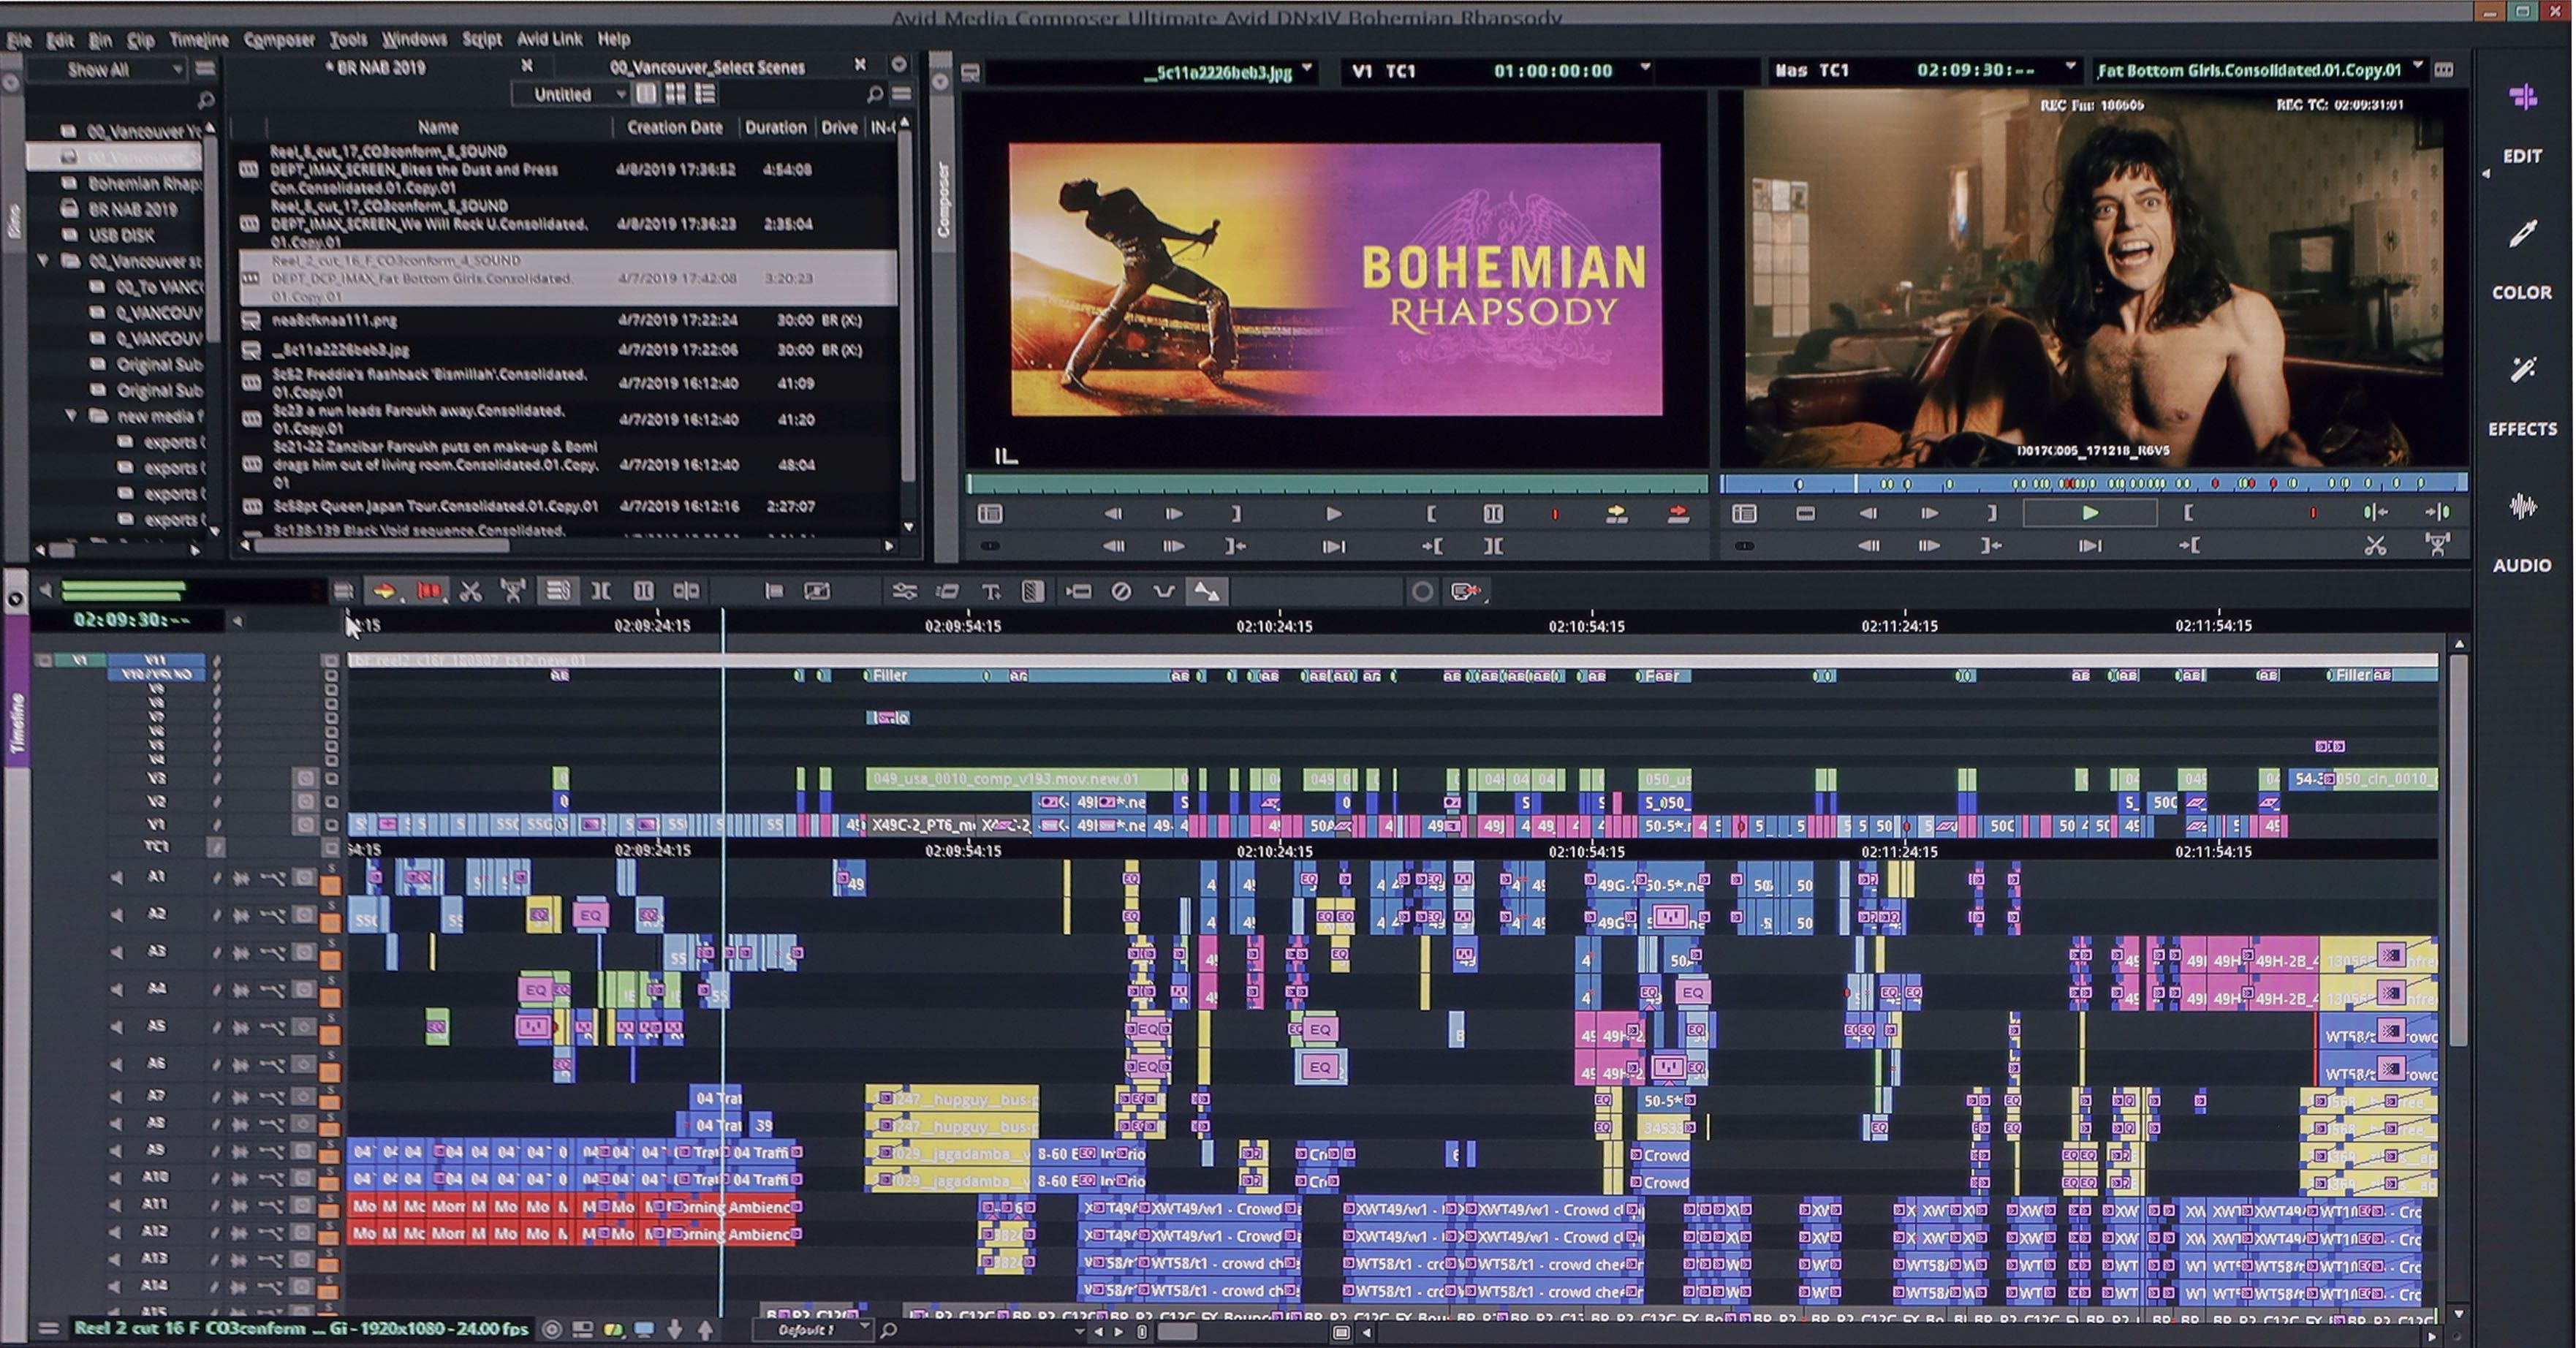 Happy Timelinetuesday We Re Showing The Timeline Of Bohemian Rhapsody At Nab 2019 With Editor John Ottman Video Editing Software Video Editing Filmmaking